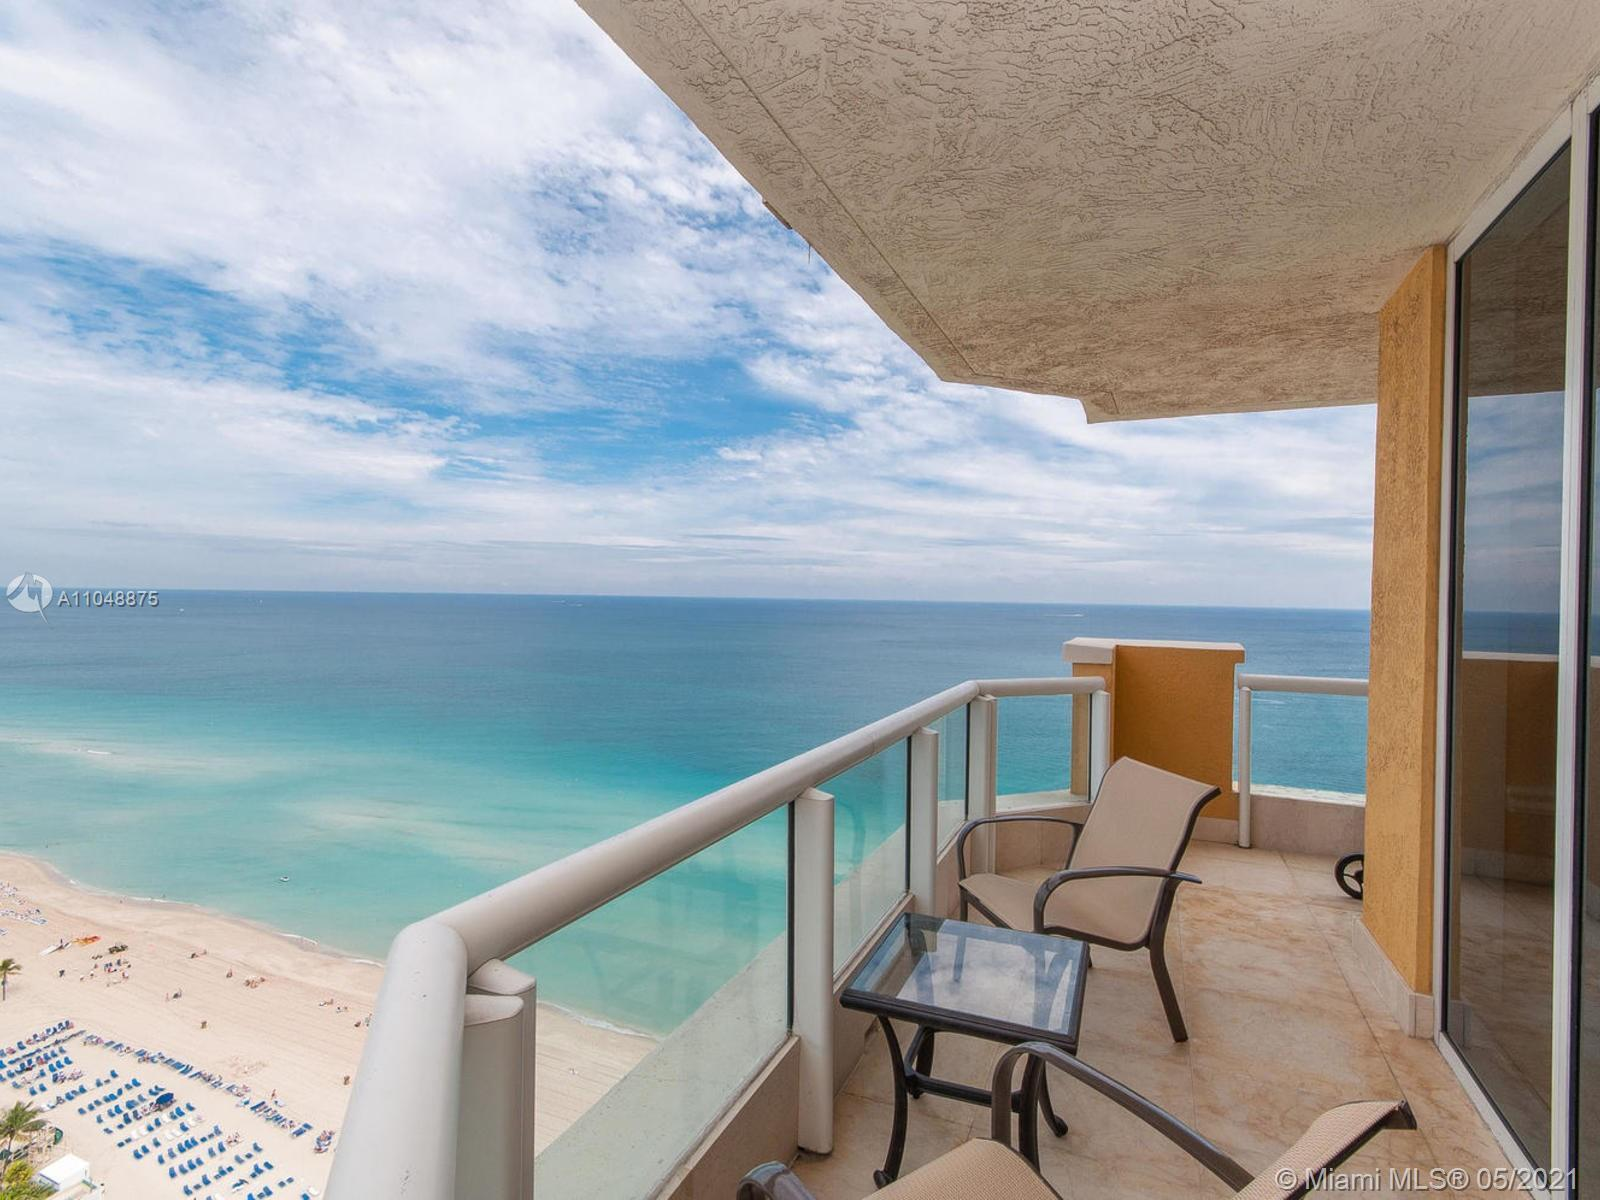 SPACIOUS CORNER UNIT IN DESIRABLE ACQUALINA, DIRECT OCEAN VIEW AND INTRACOASTAL VIEW!!! 5 STARS AMEN